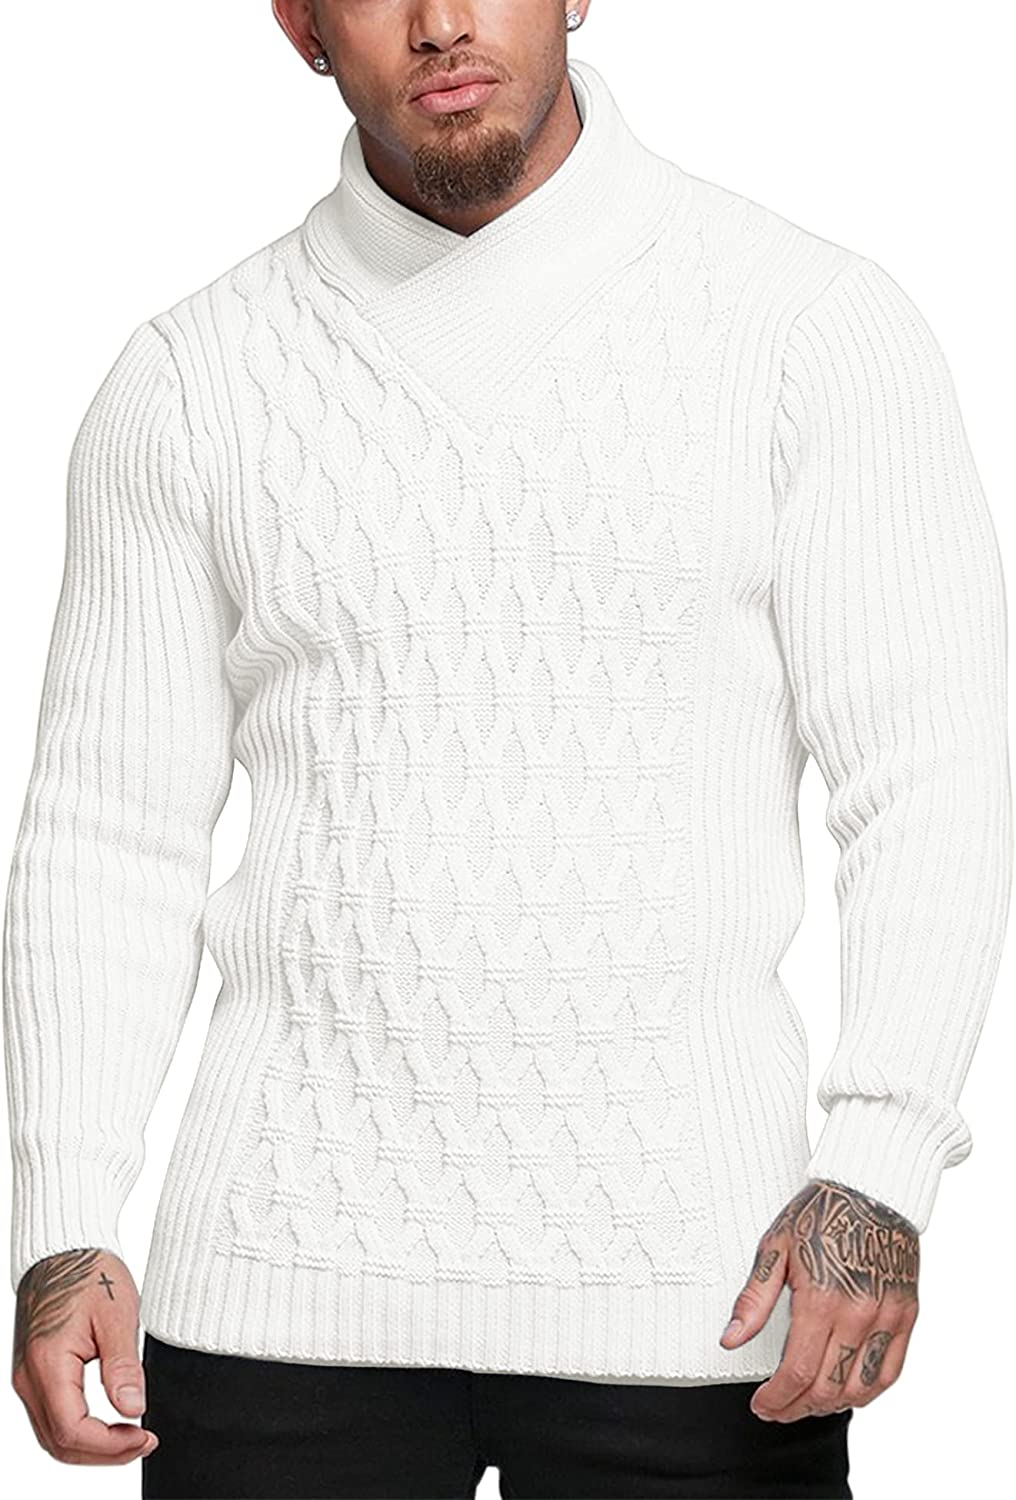 COOFANDY Mens Knitted Pullover Sweater Cable Knit Jumper Stylish Knitwear Lightweight Sweaters